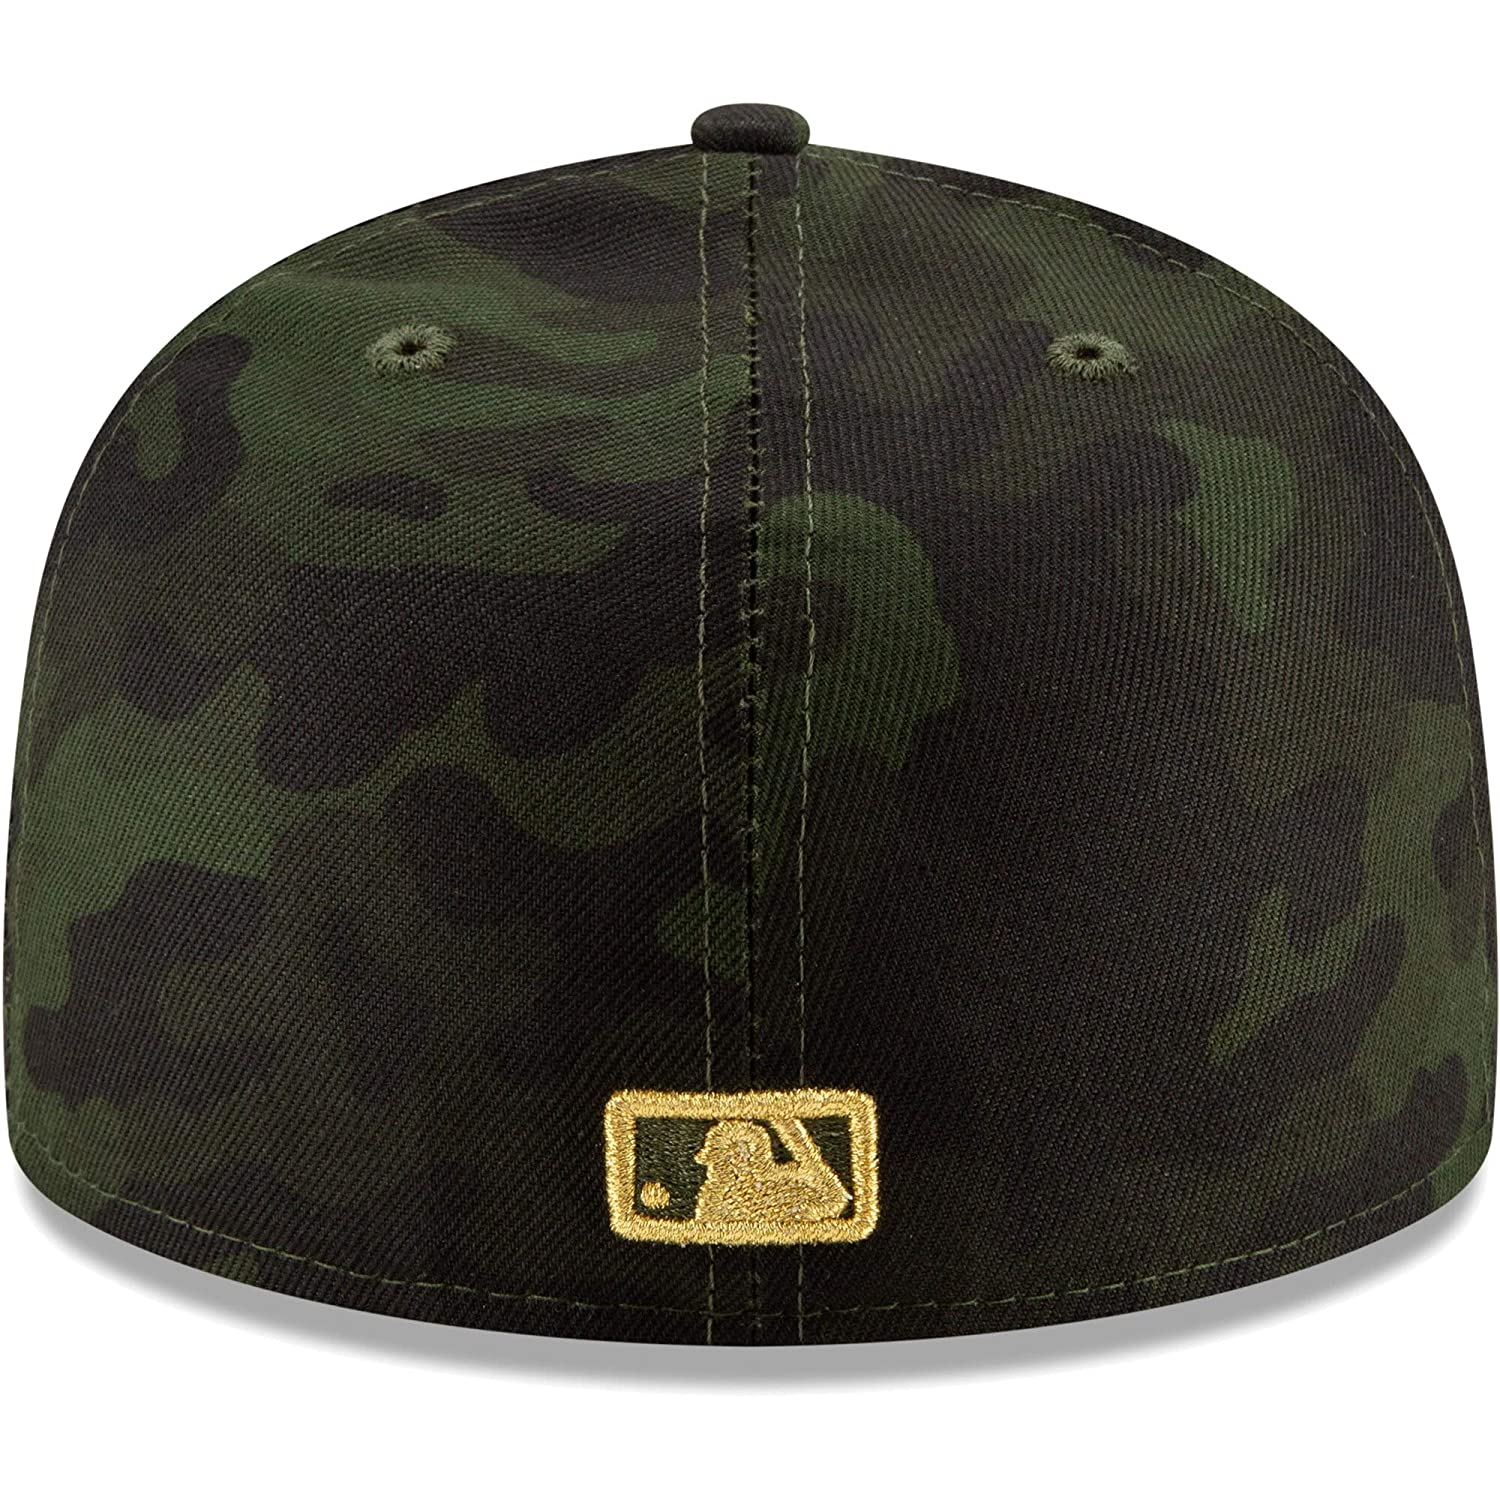 timeless design 63670 67aff Amazon.com   New Era Houston Astros 2019 MLB Armed Forces Day On-Field  59FIFTY Fitted Hat - Camo   Sports   Outdoors